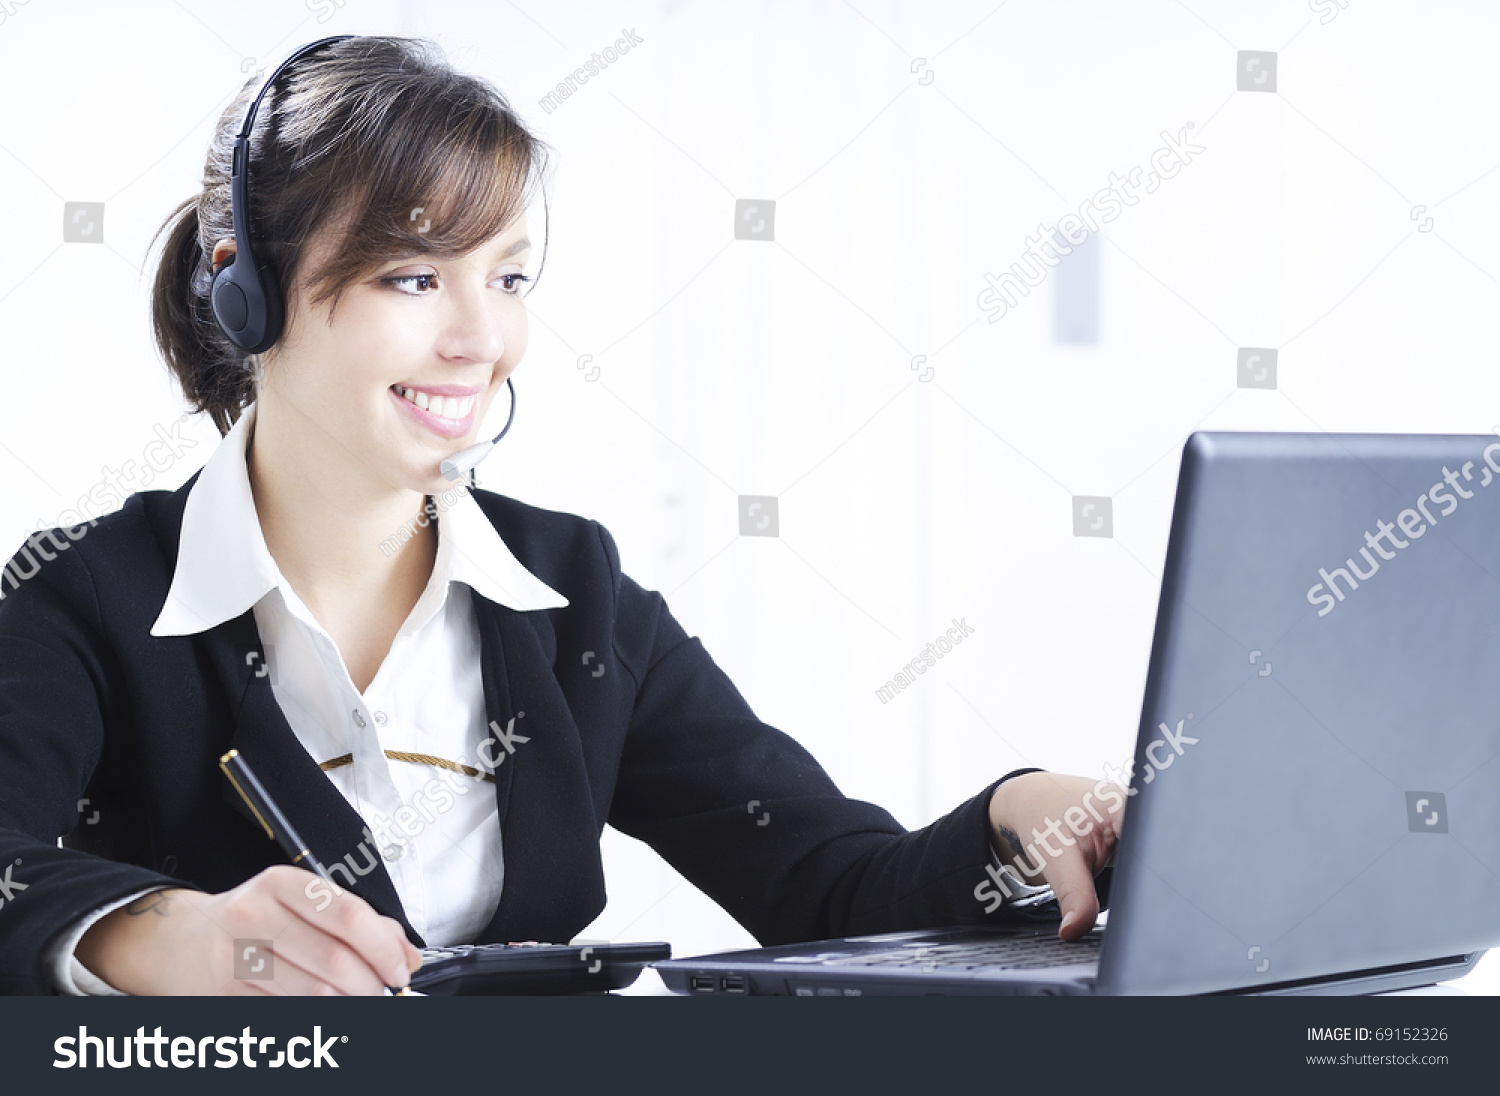 young w working office laptop headphones stock photo  young w working in office laptop and headphones customer service and call center